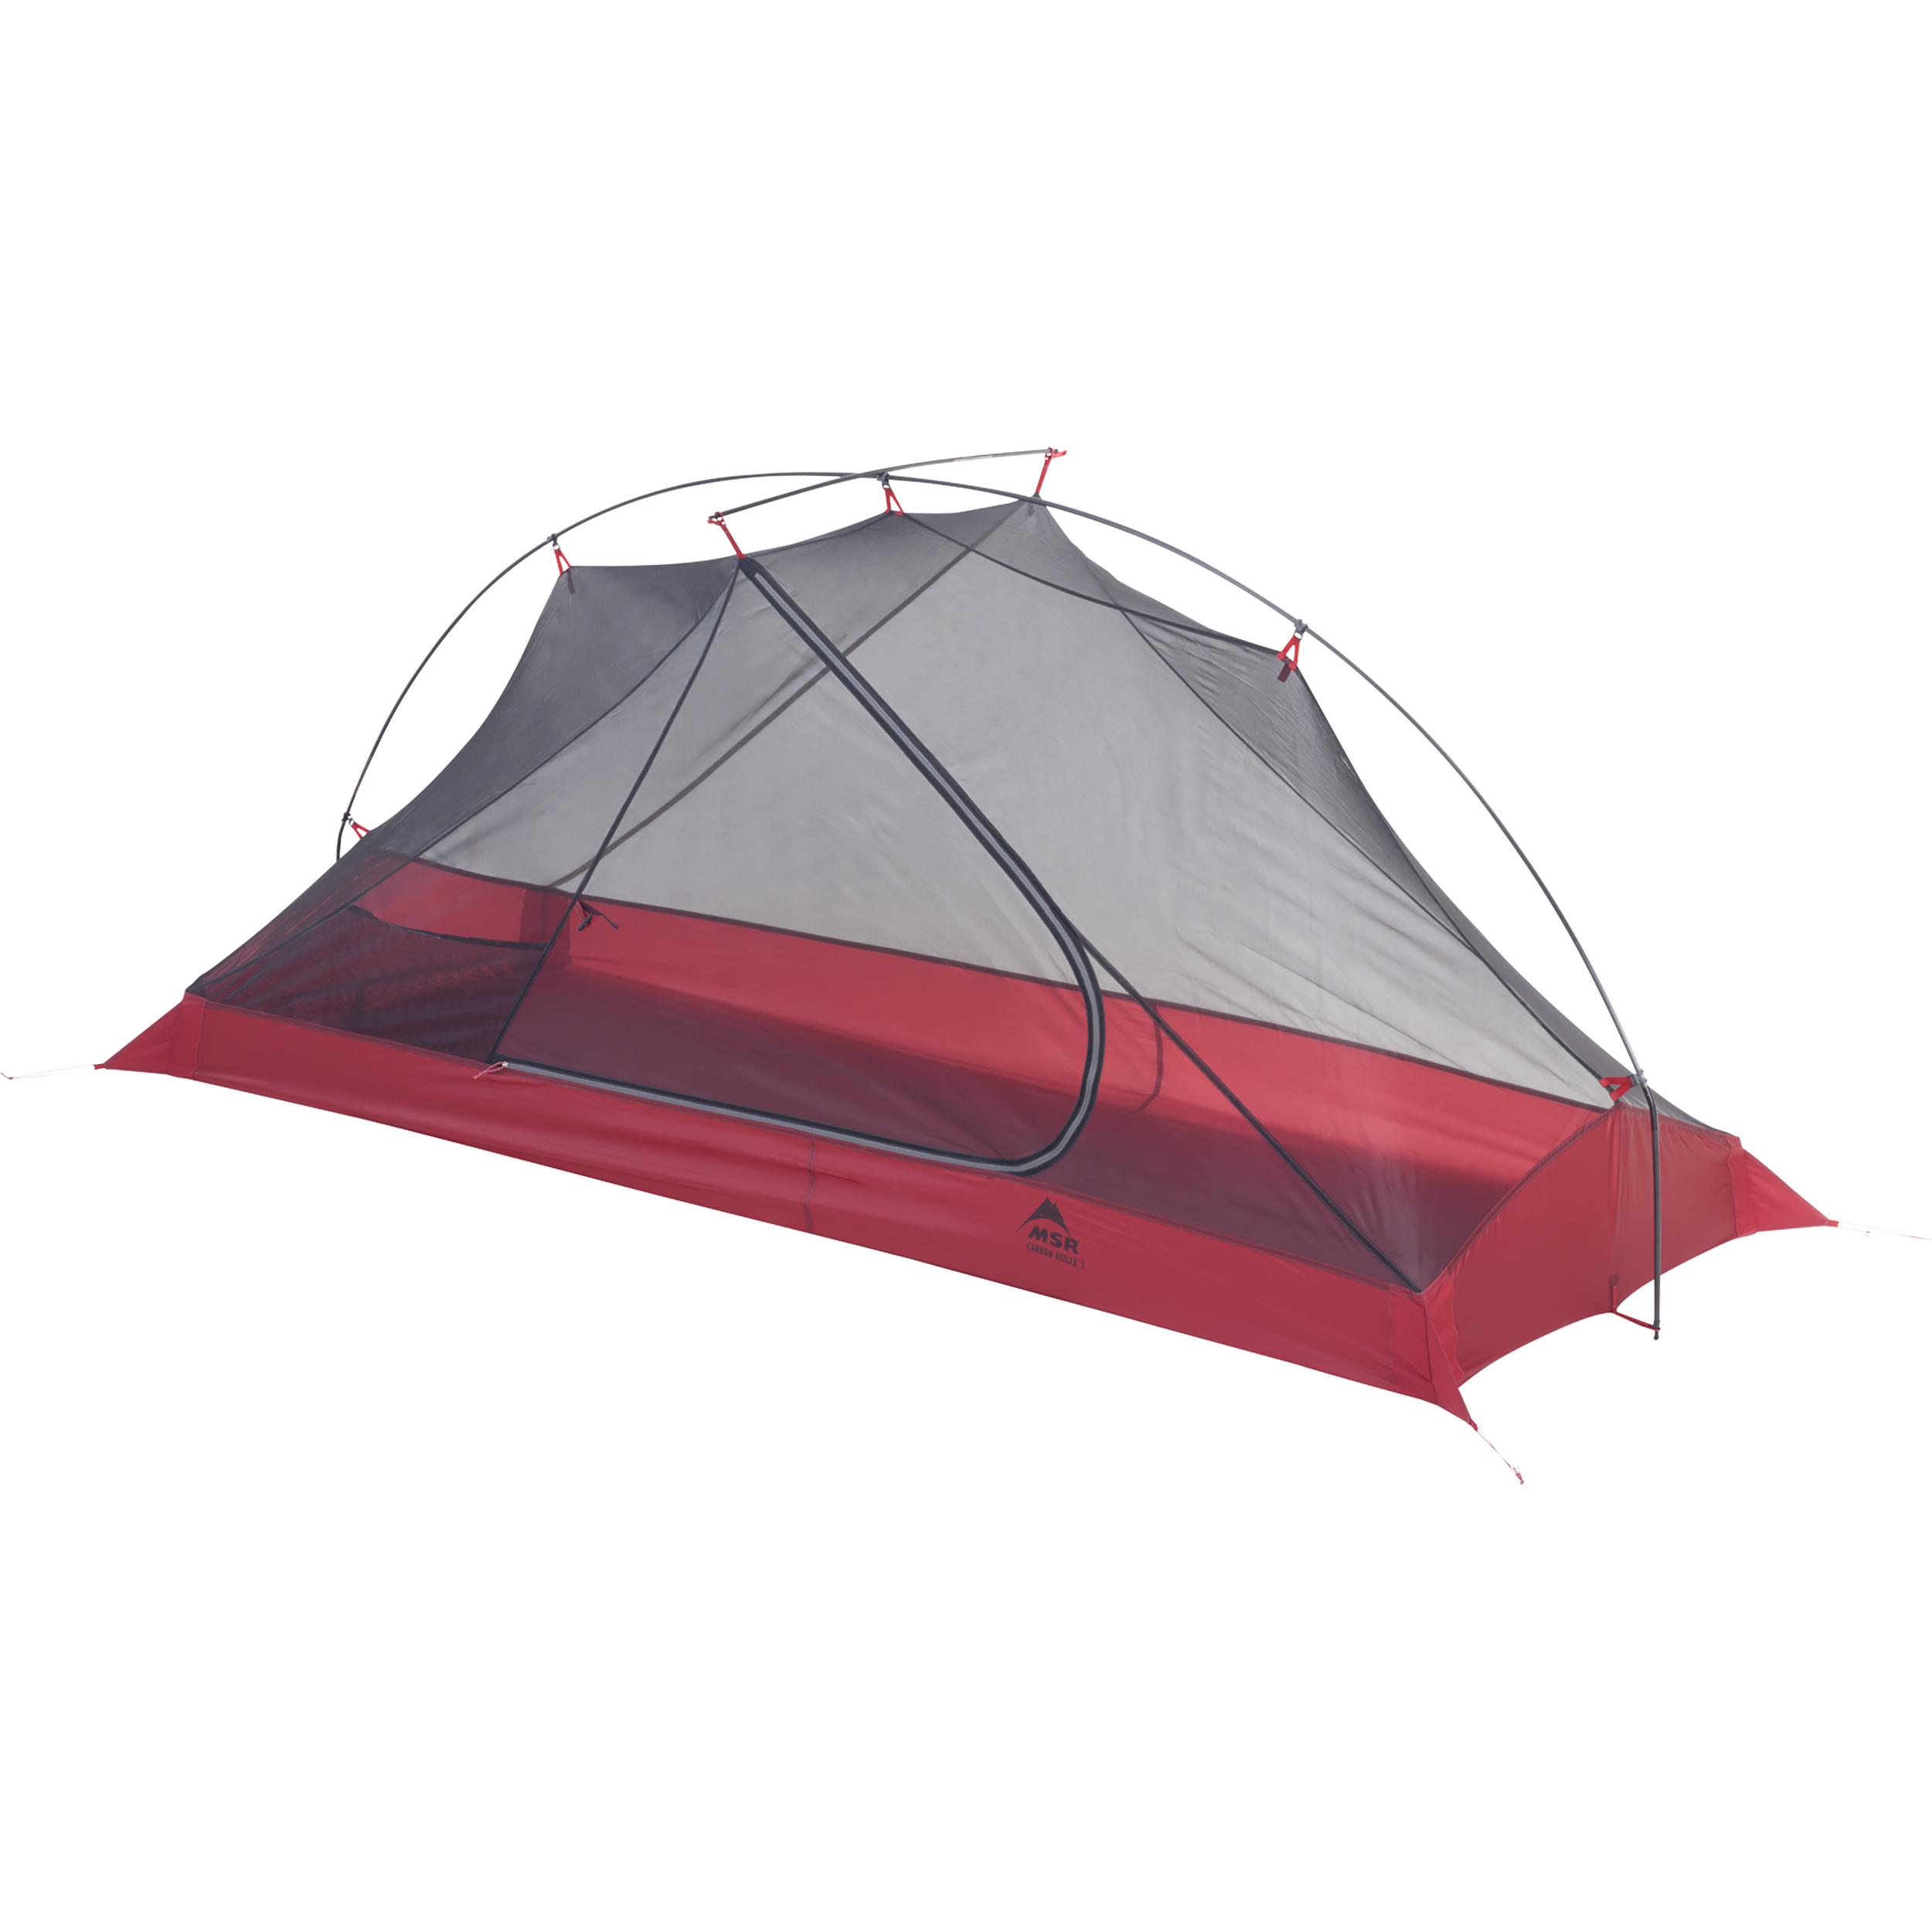 Carbon Reflex 1 Featherweight Tent Backpacking Tents Msr